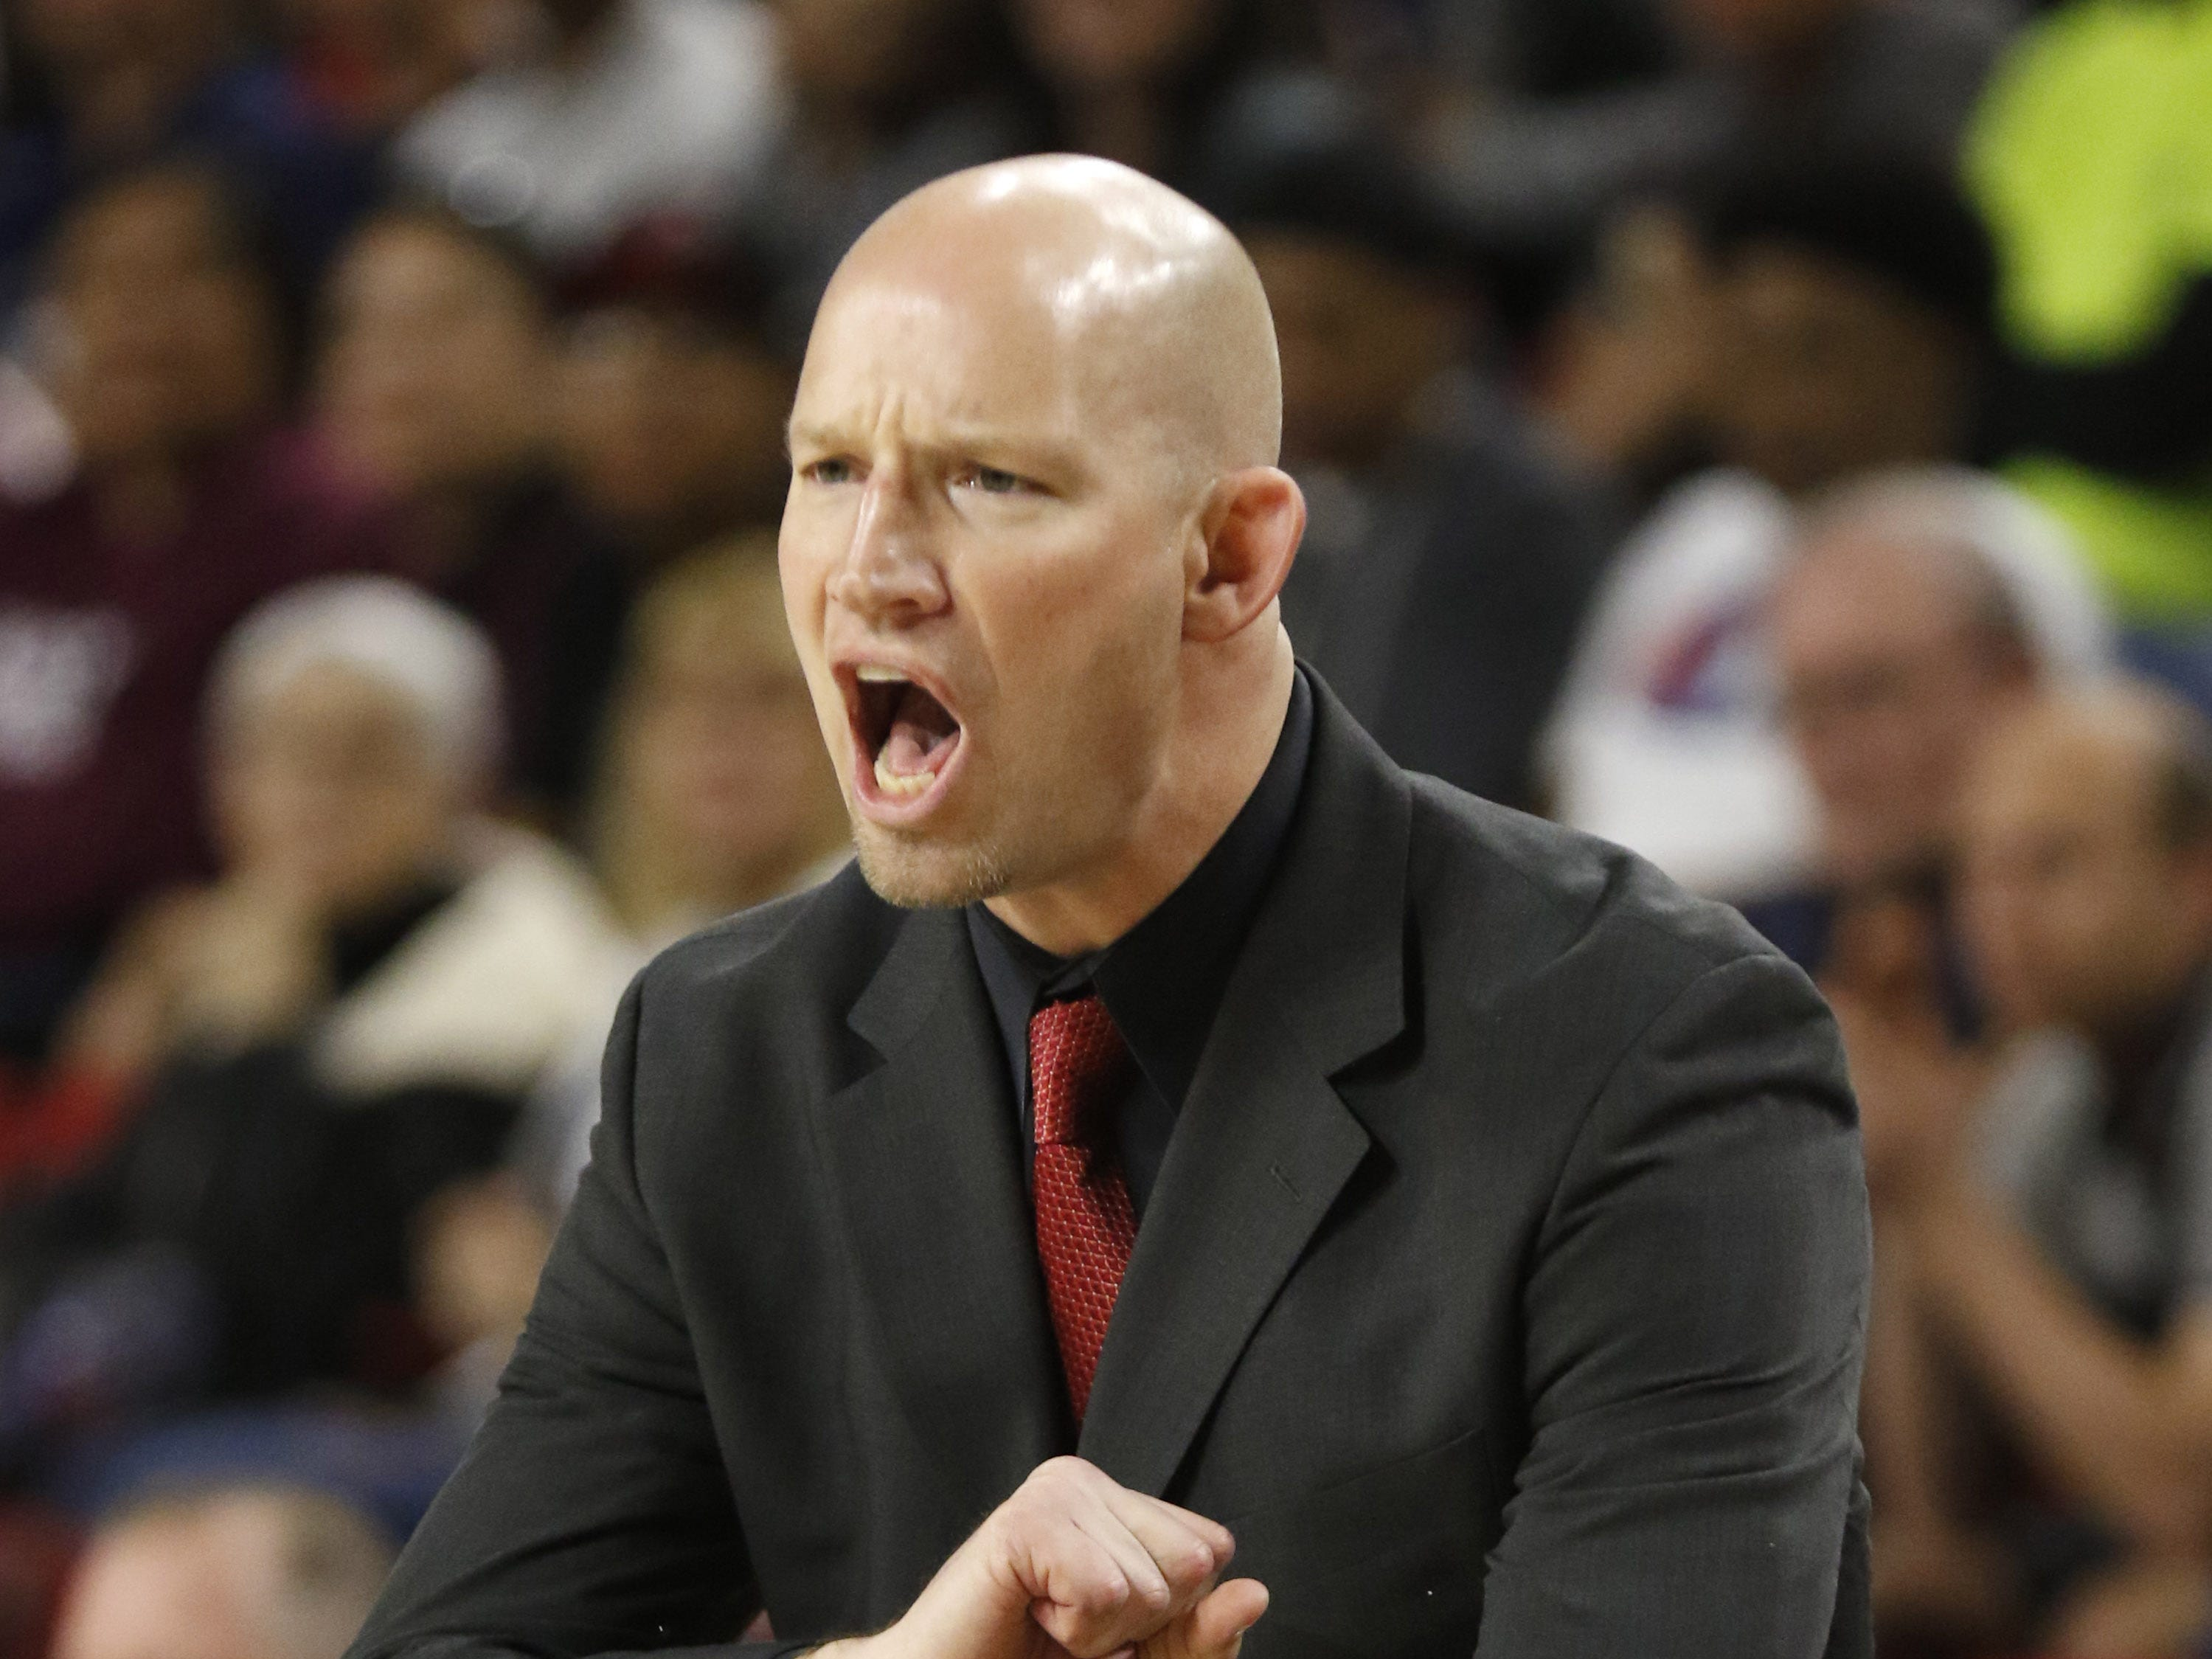 Chaparral head coach Dan PetersonÊhollers out to his team against Pinnacle during the 6A Boys State Championship at Wells Fargo Arena in Tempe Tuesday, Feb 26, 2019.